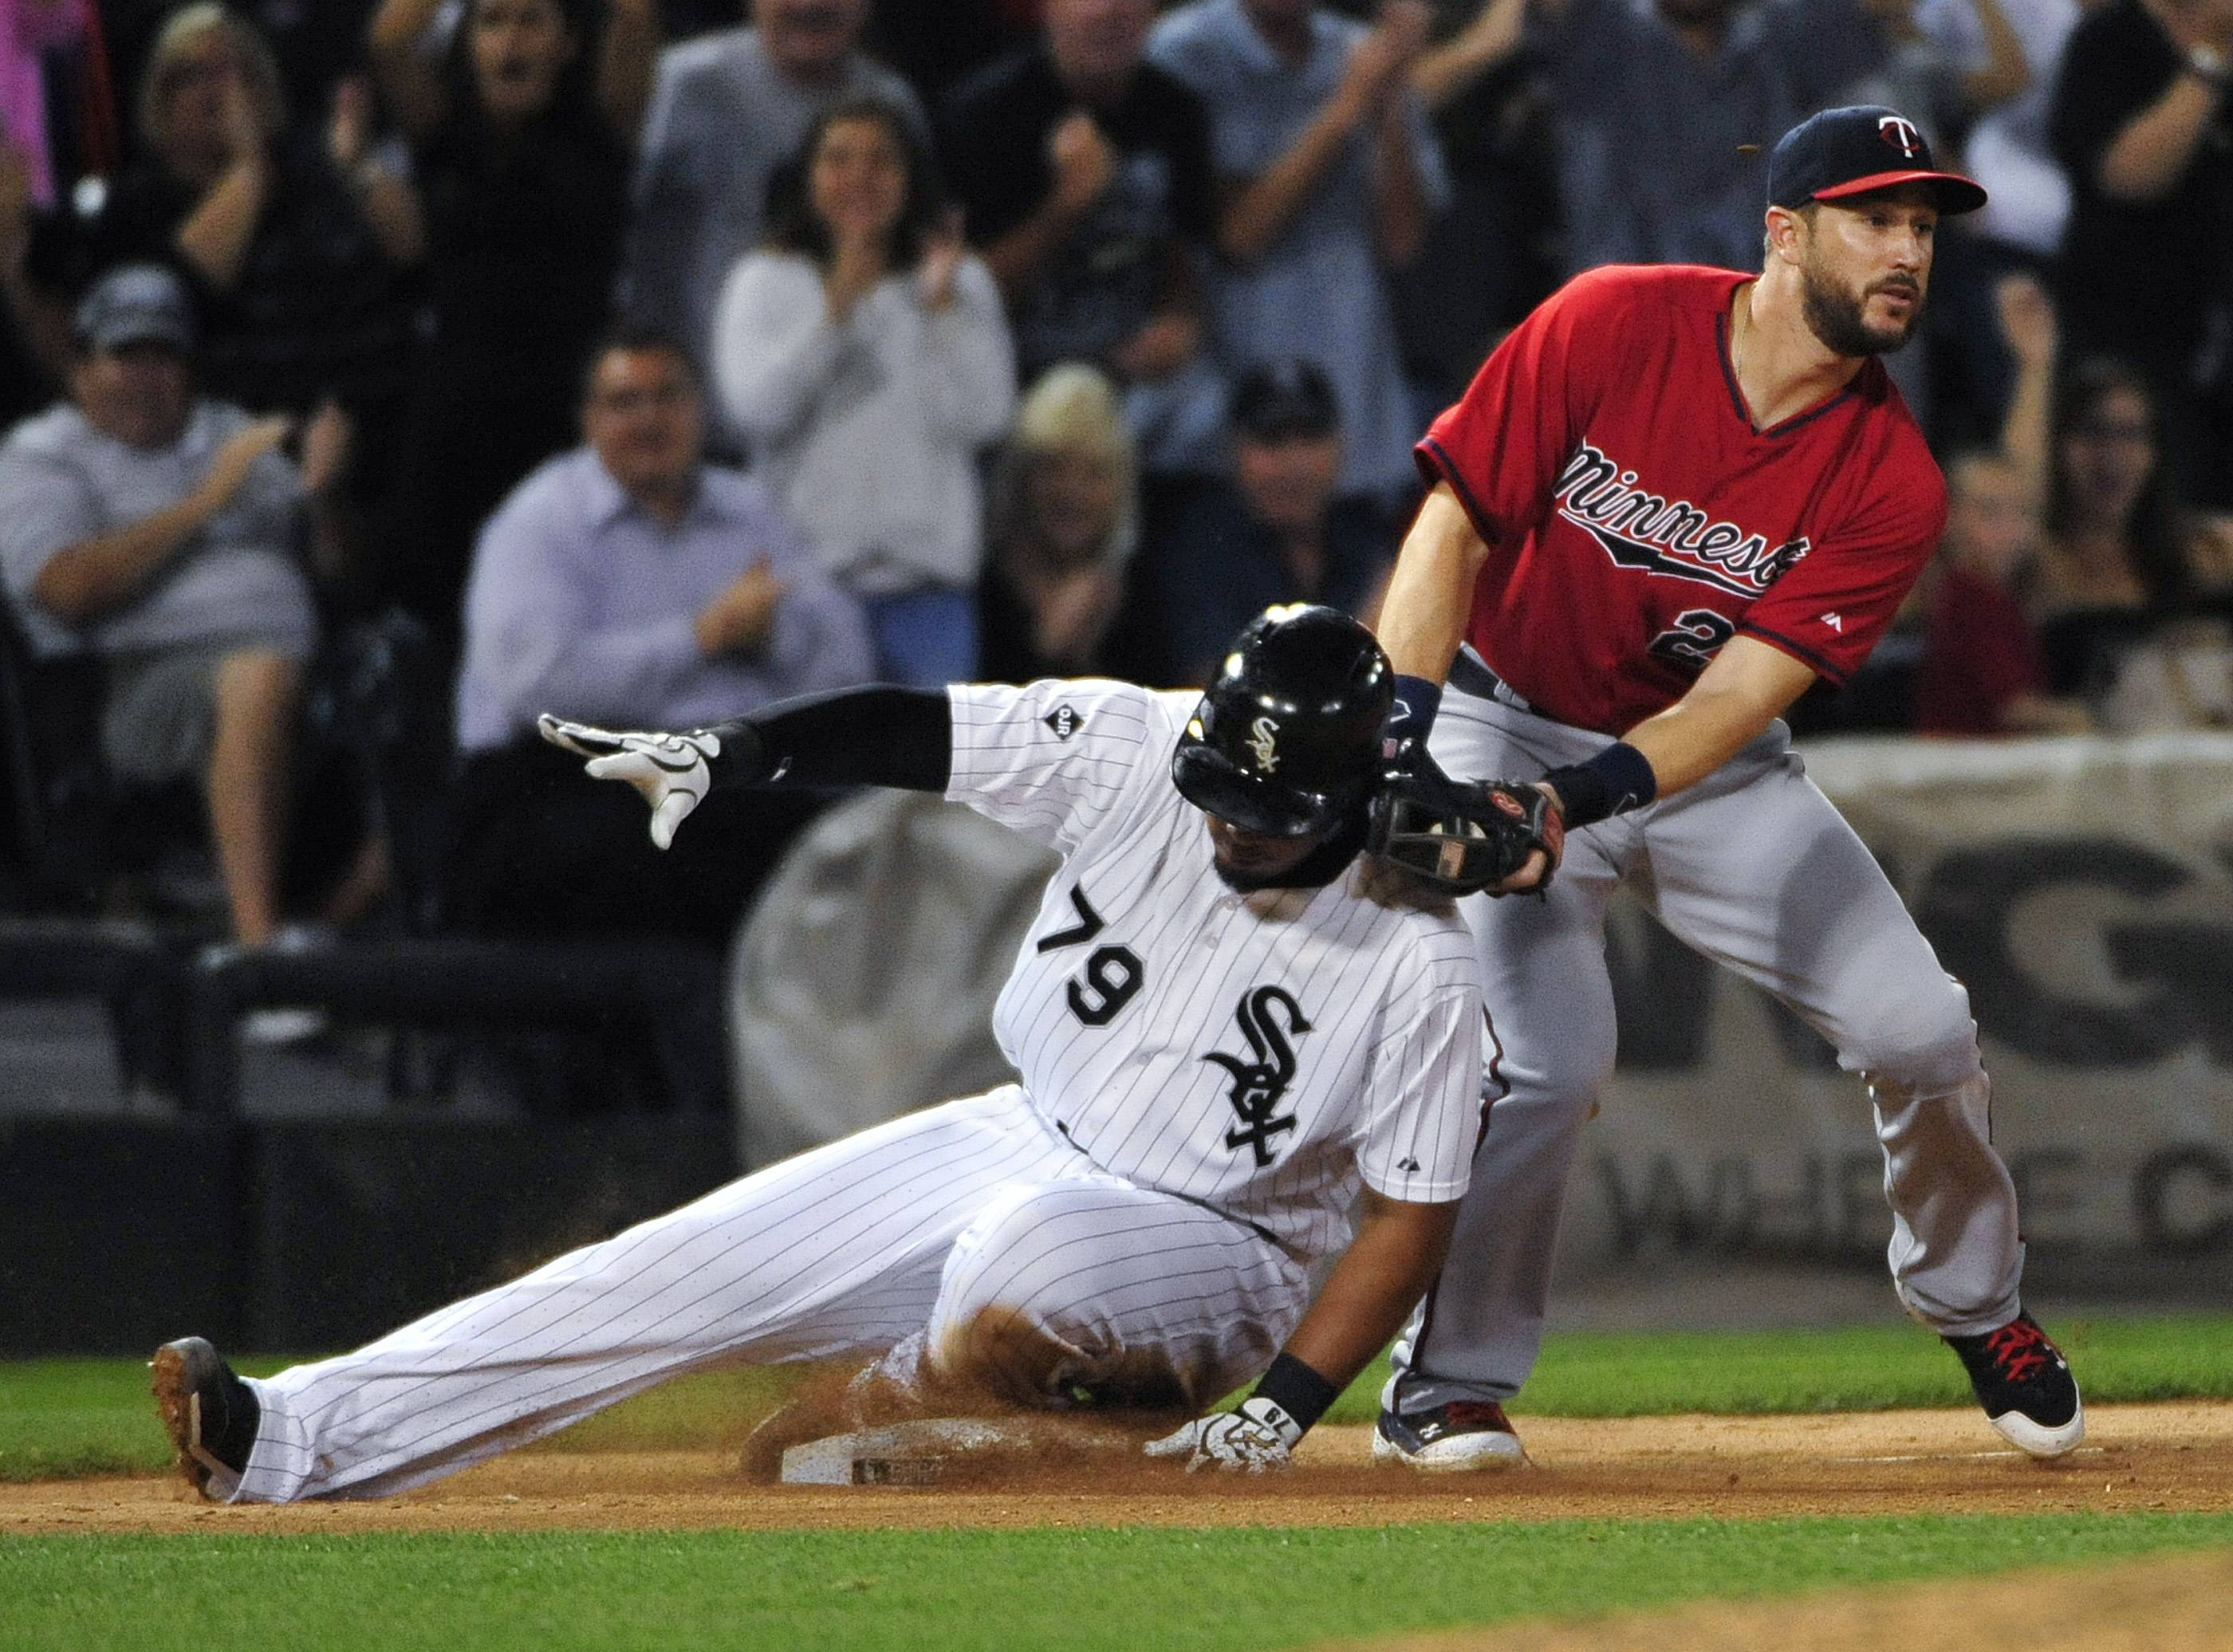 The White Sox's Jose Abreu (79) slides safely into third base as Minnesota Twins third baseman Trevor Plouffe makes a late tag during the eighth inning of a baseball game, Friday, Aug. 1, 2014, in Chicago.